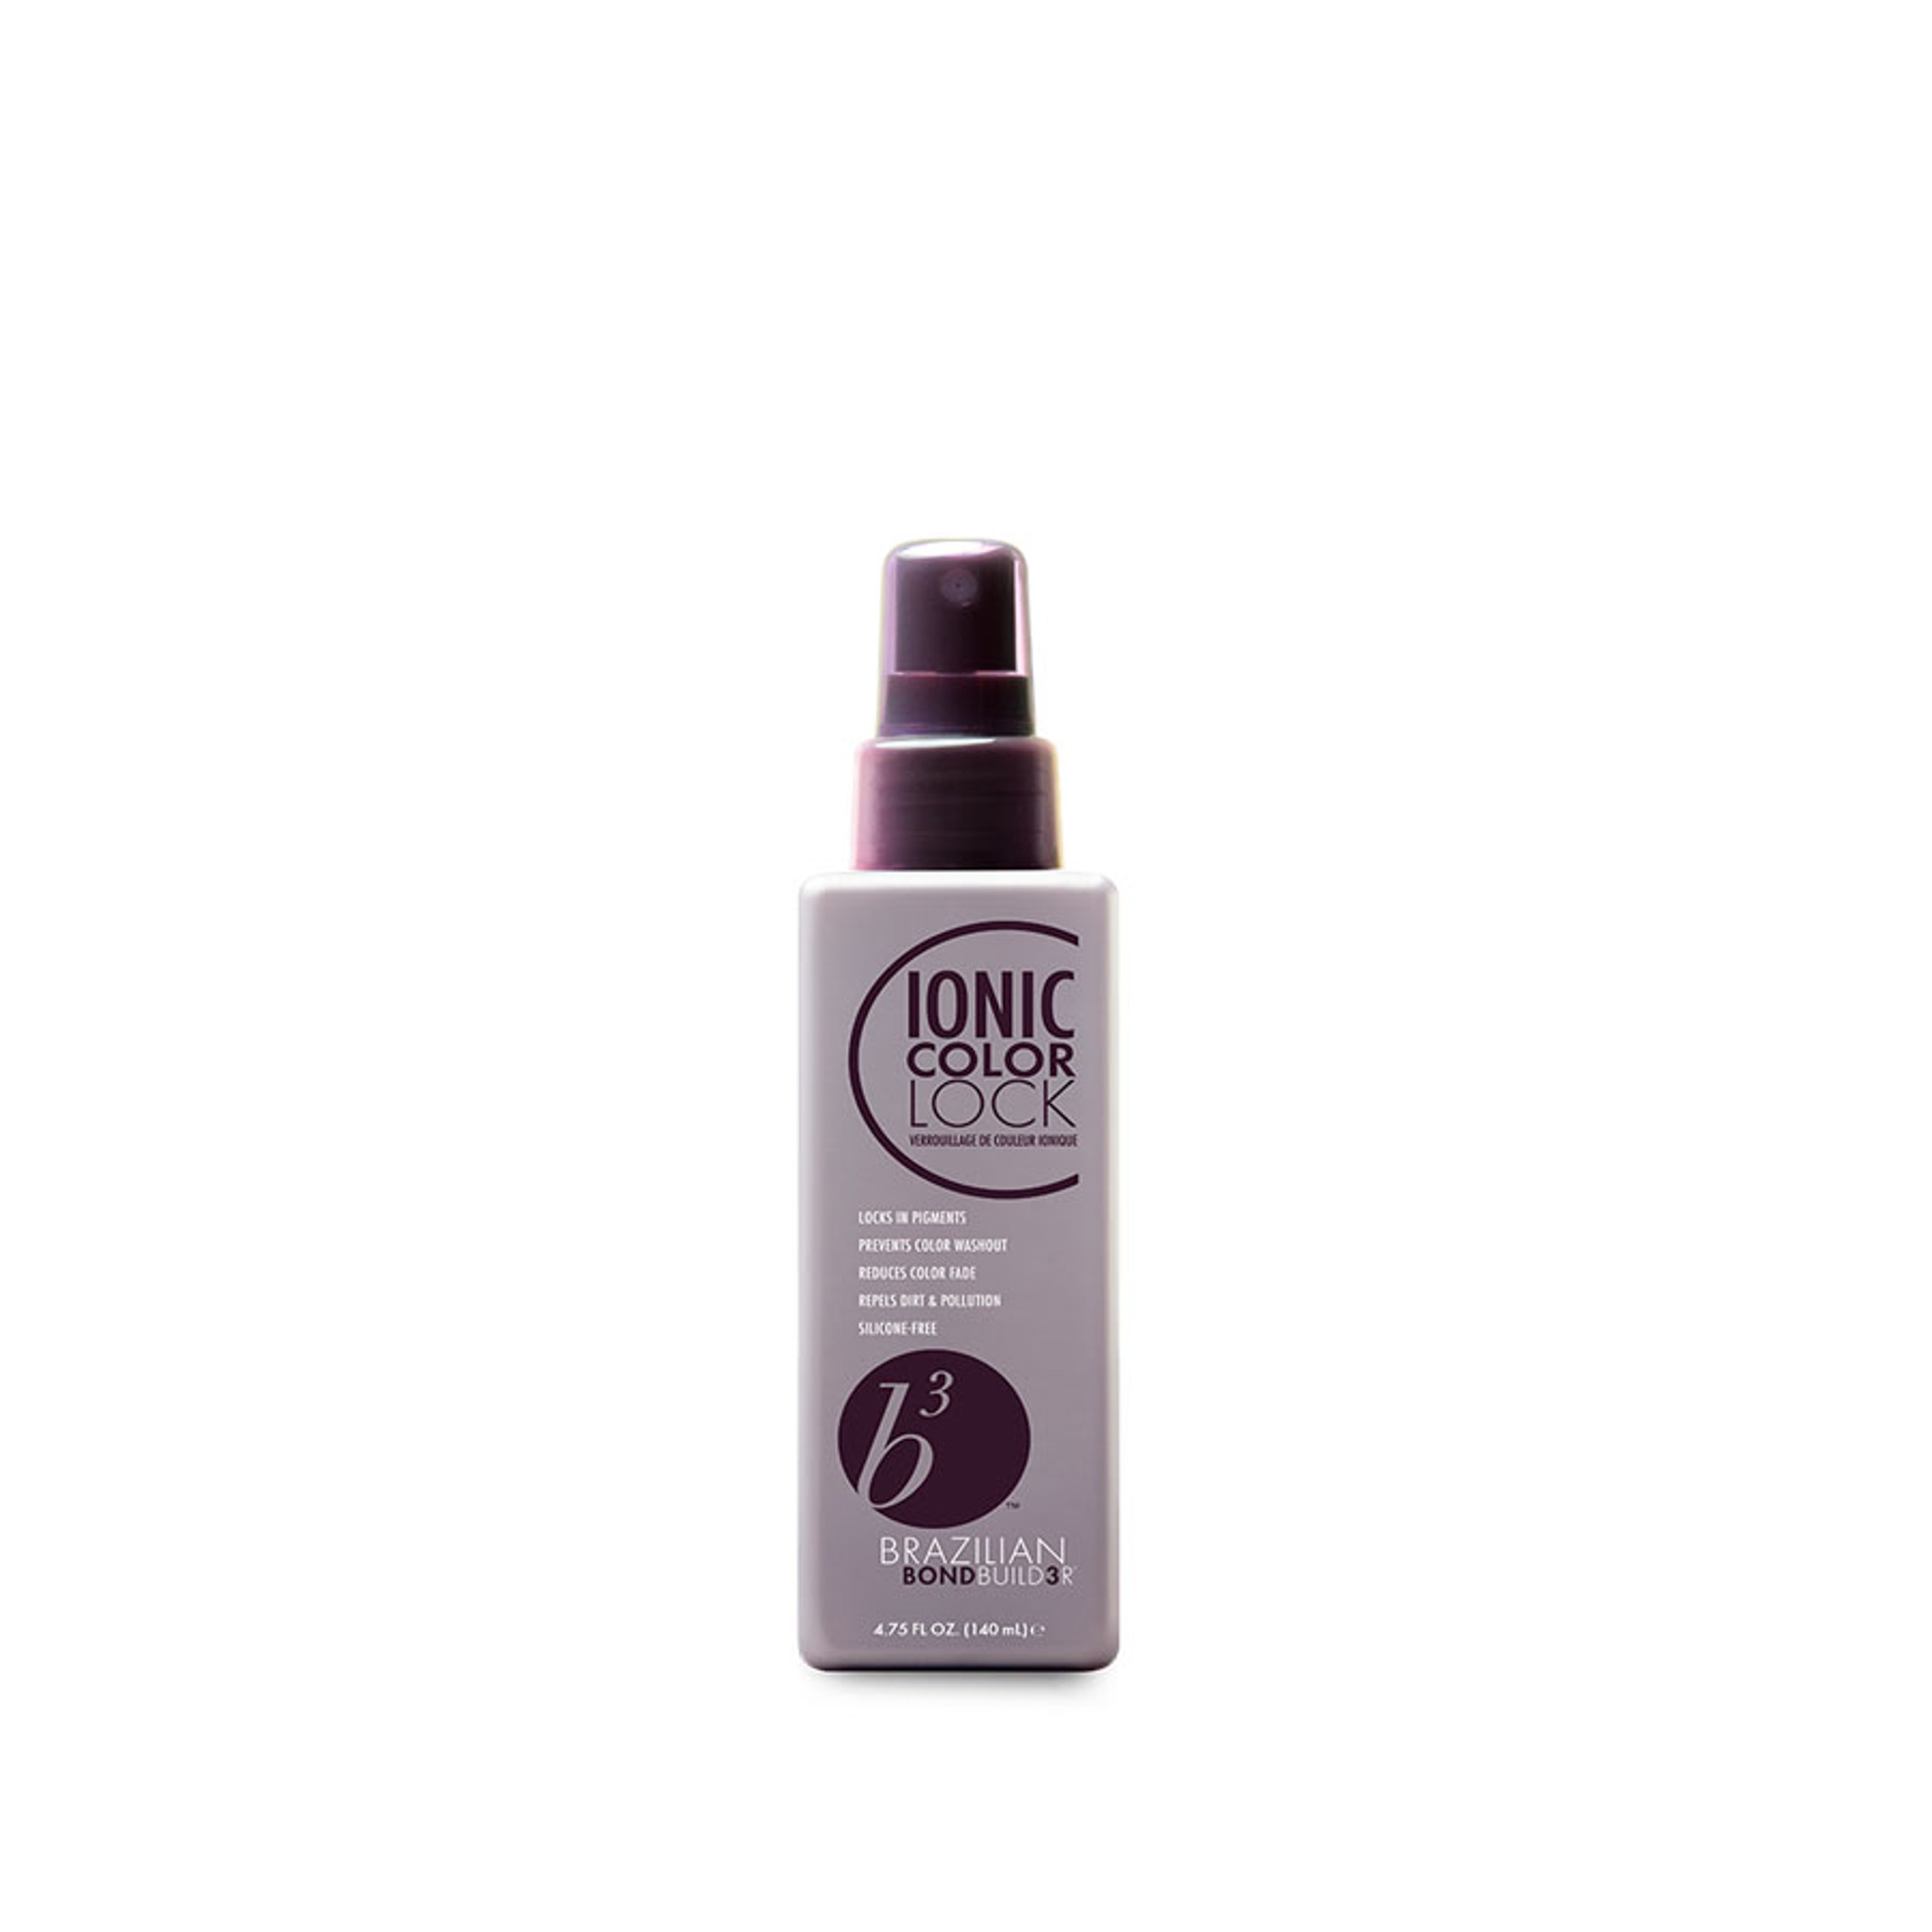 Brazilian Bond Builder Ionic Color Lock locks in week 1 colour and is perfect for all shades, colours and blonde tones. Simply shake & spray Brazilian Bond Builder Ionic Color Lock after every wash to prevent colour fade and adds major shine to hair. Buy from Salon Support - Hair Trade & Salon Wholesale Melbourne Australia.